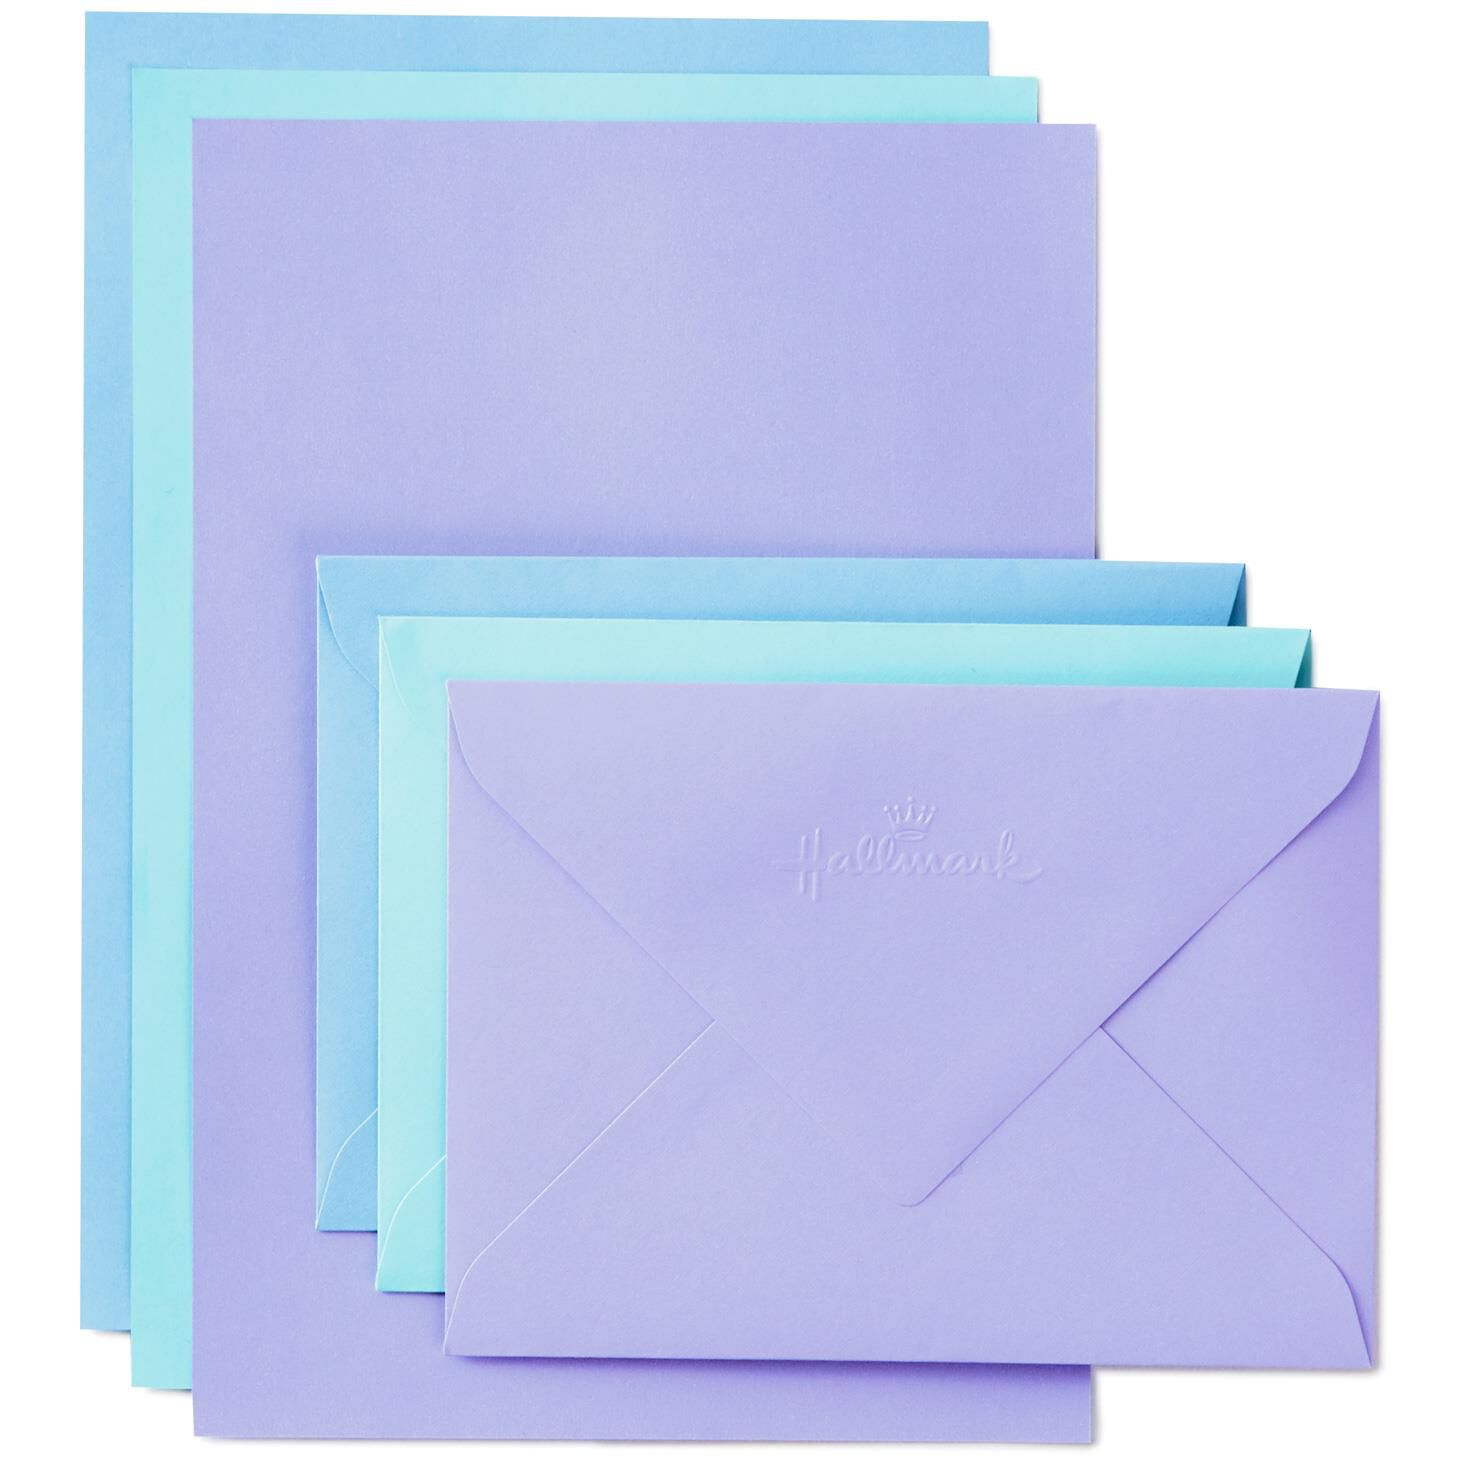 graphic about Disney Printable Envelopes identify Notice Playing cards Stationery E-newsletter Paper, Envelopes